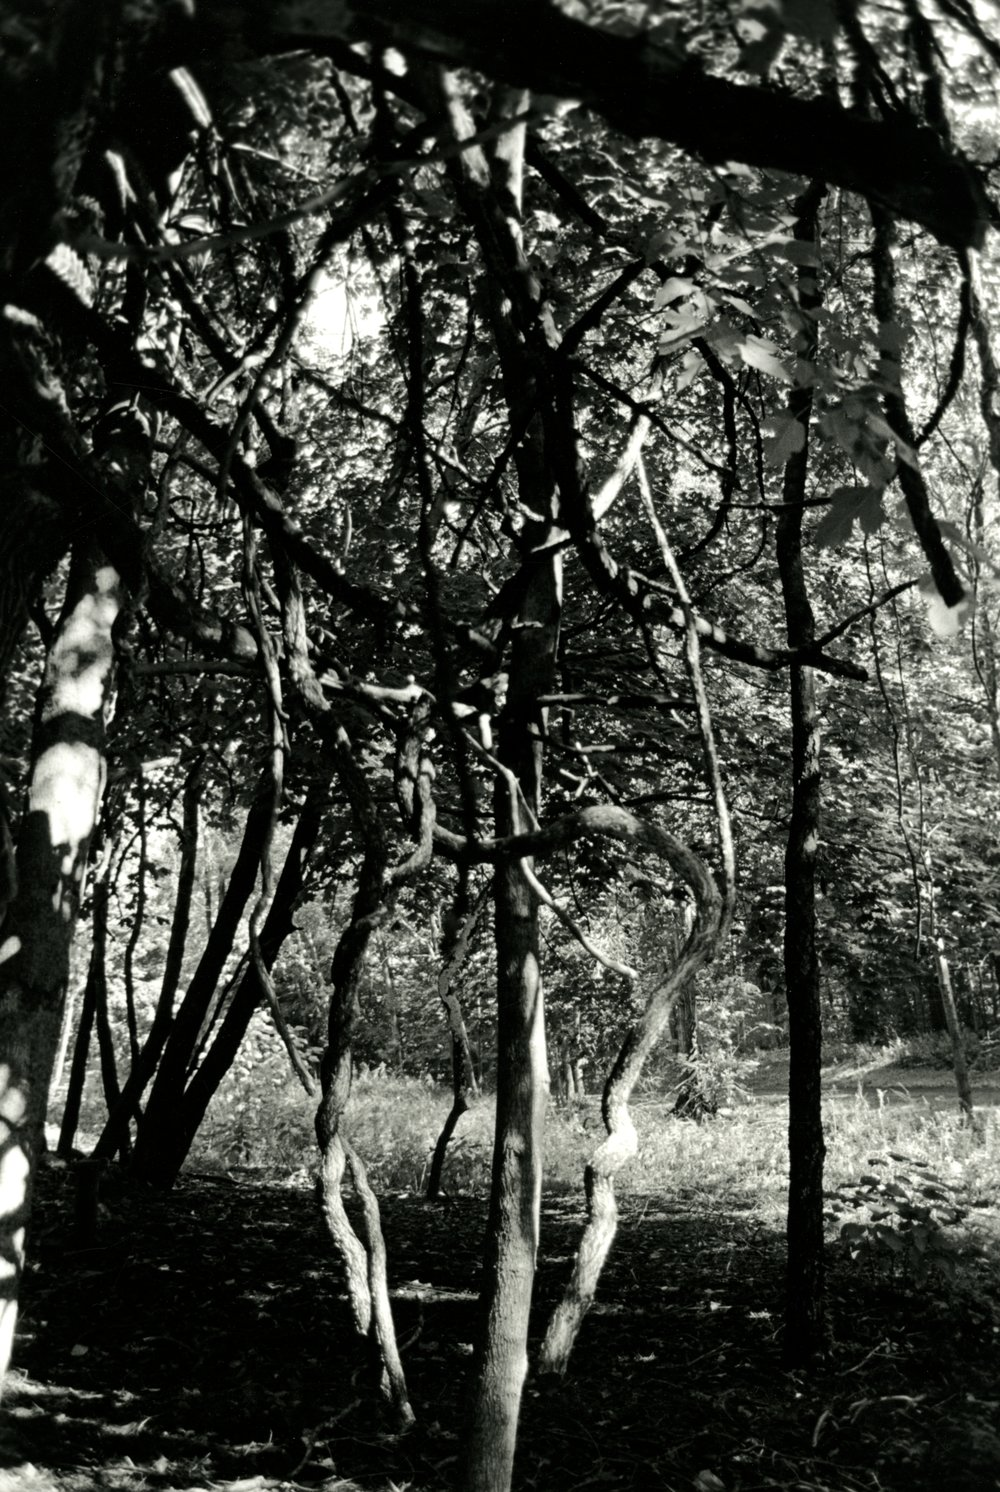 35mm black and white photograph, 2013